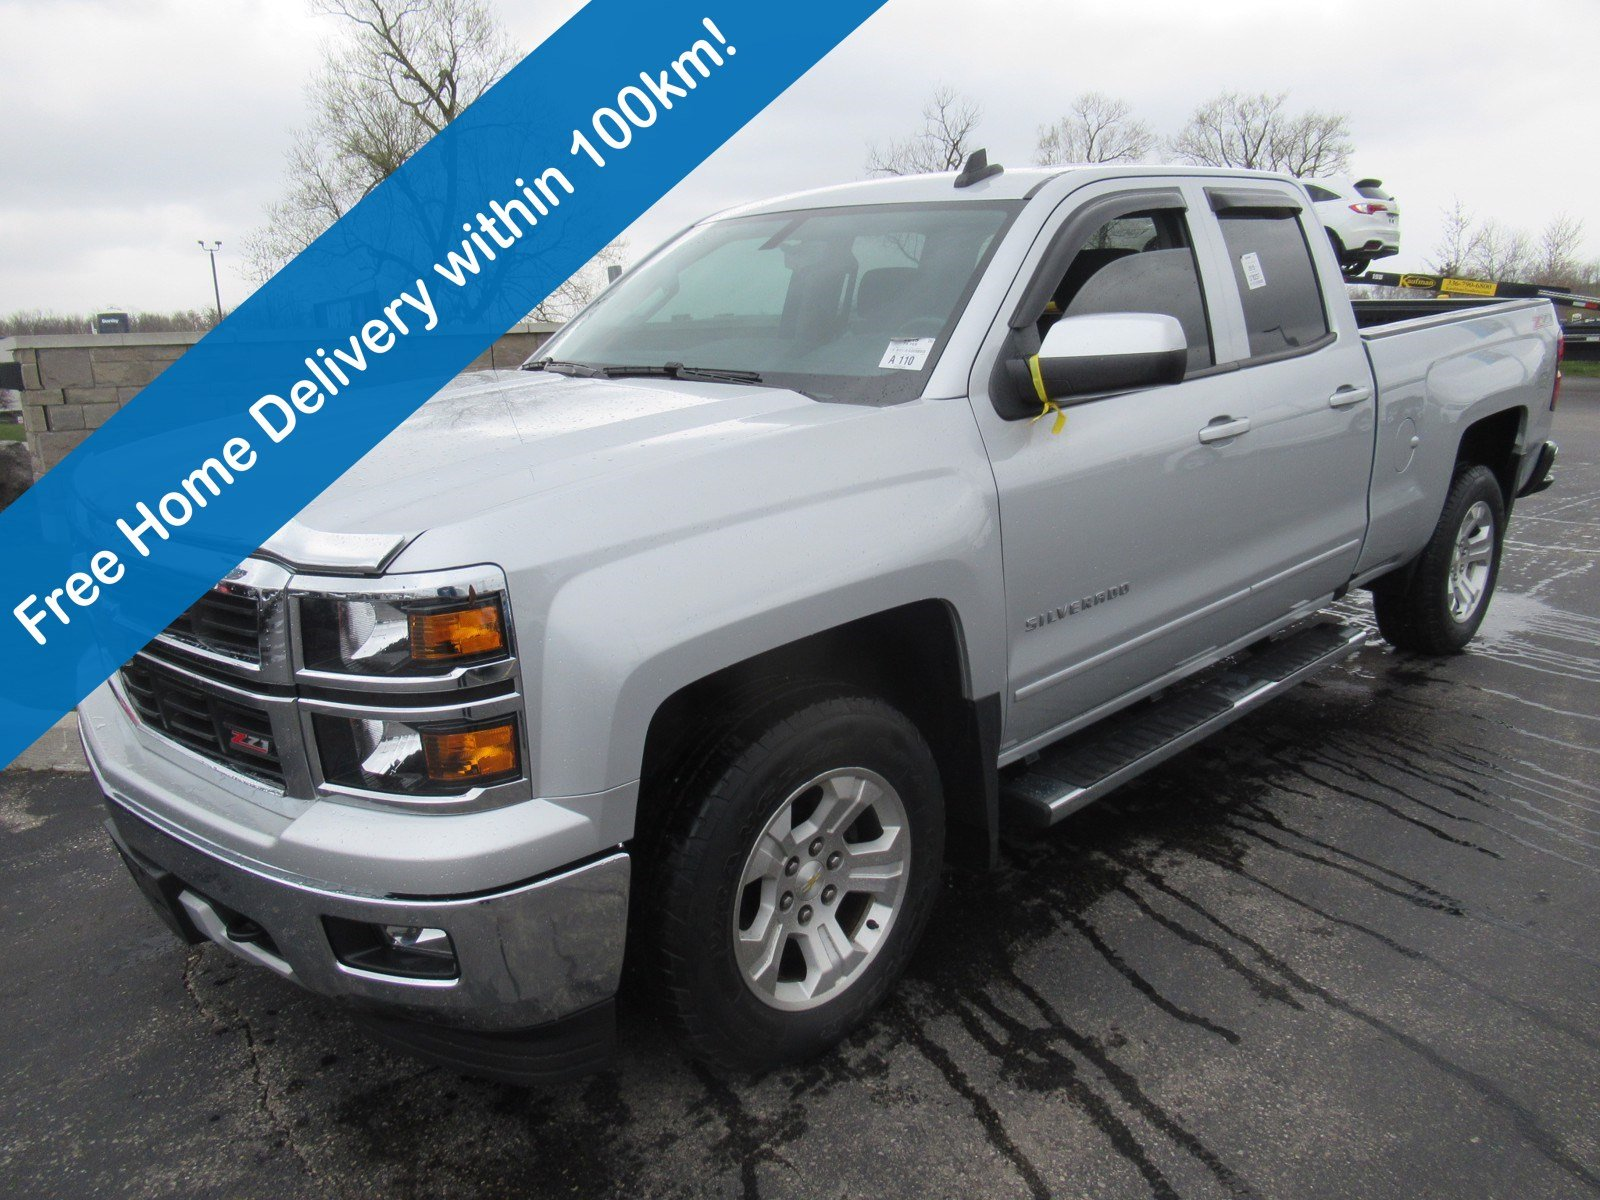 Certified Pre-Owned 2015 Chevrolet Silverado 1500 LT 5.3 V8 4WD Z71 True North Edition, Power Seat, Trailer Package, EZ Lift Tailgate and more!